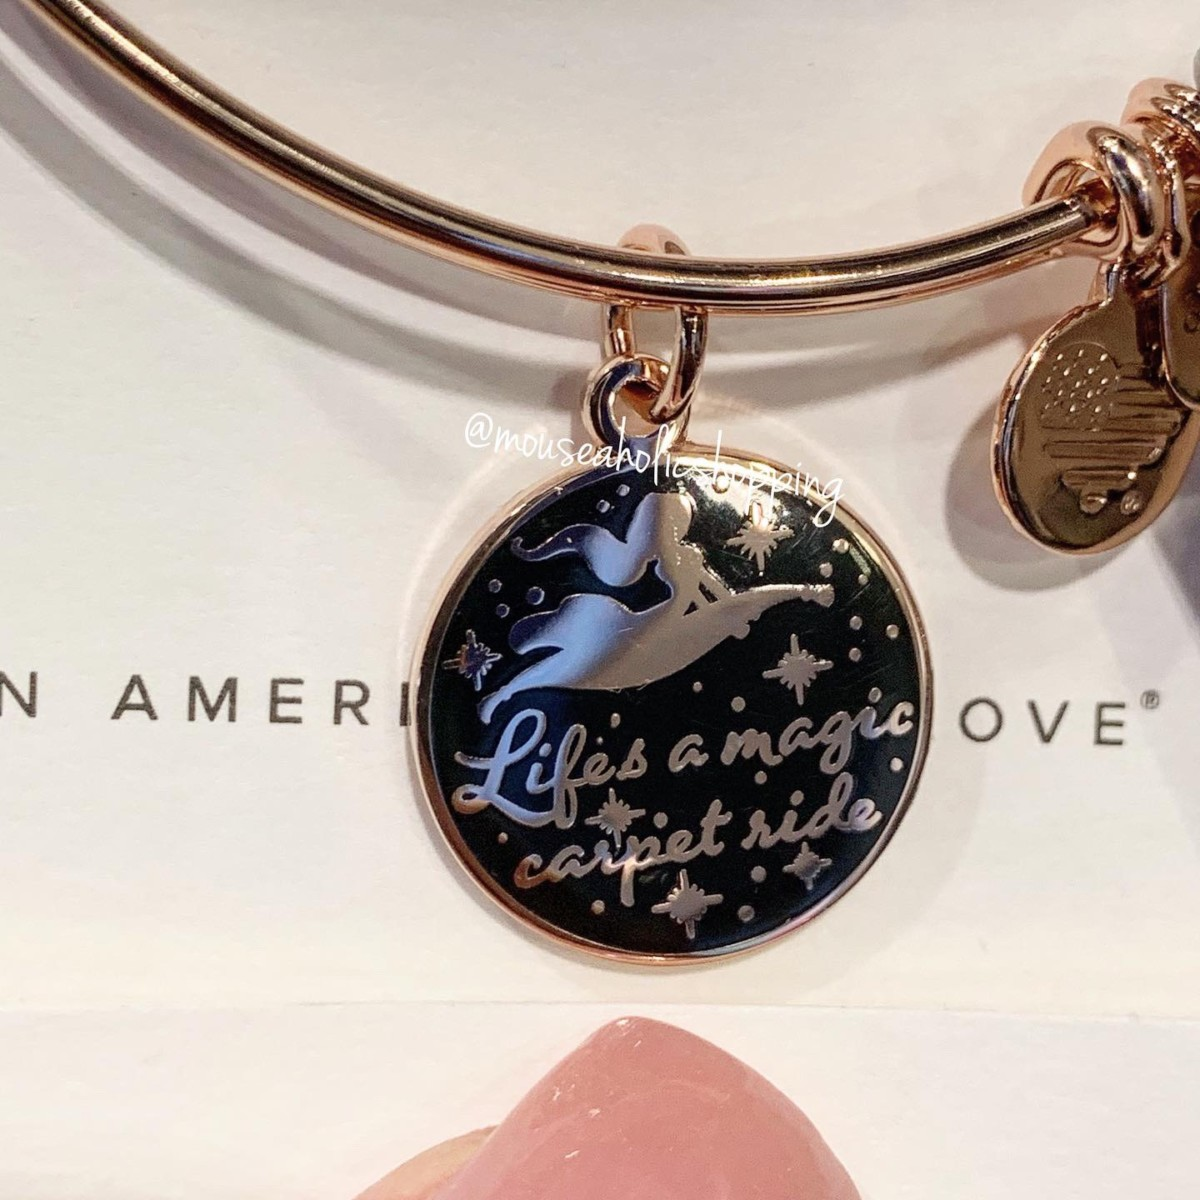 New Aladdin Inspired Alex and Ani Bracelets Are Shining, Shimmering Splendid #DisneyStyle 5